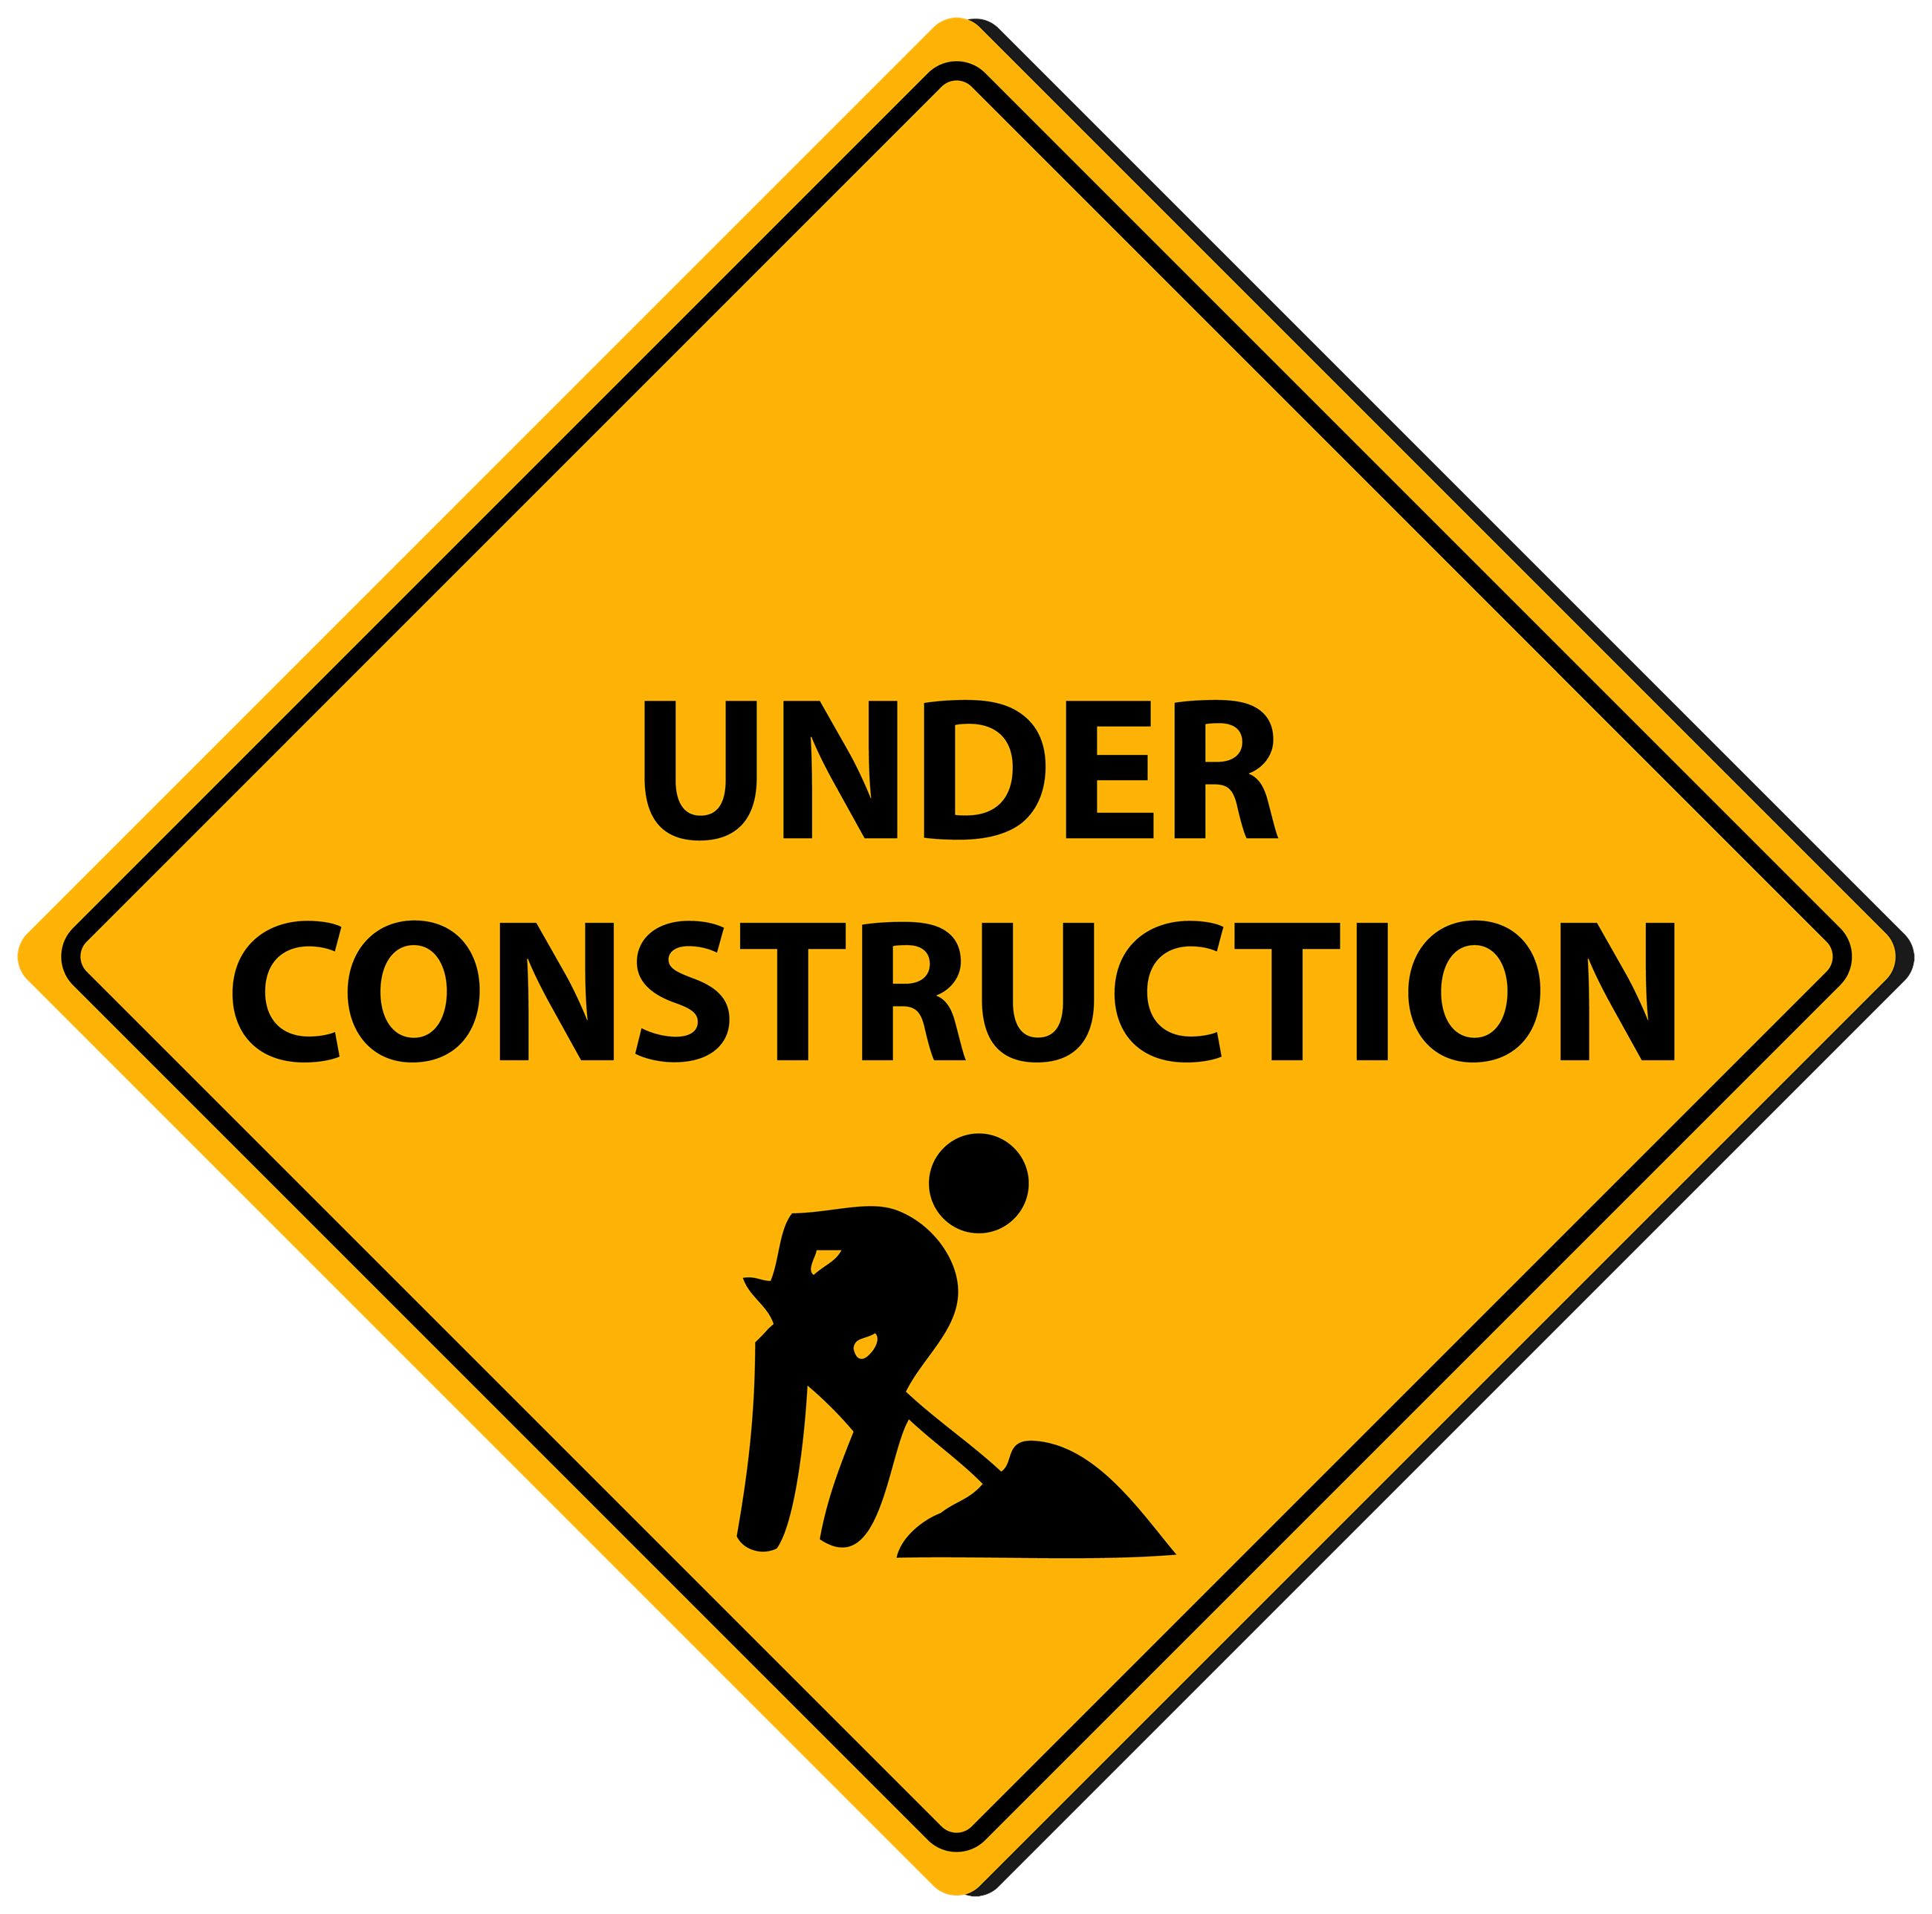 construction-sign-clipart-4